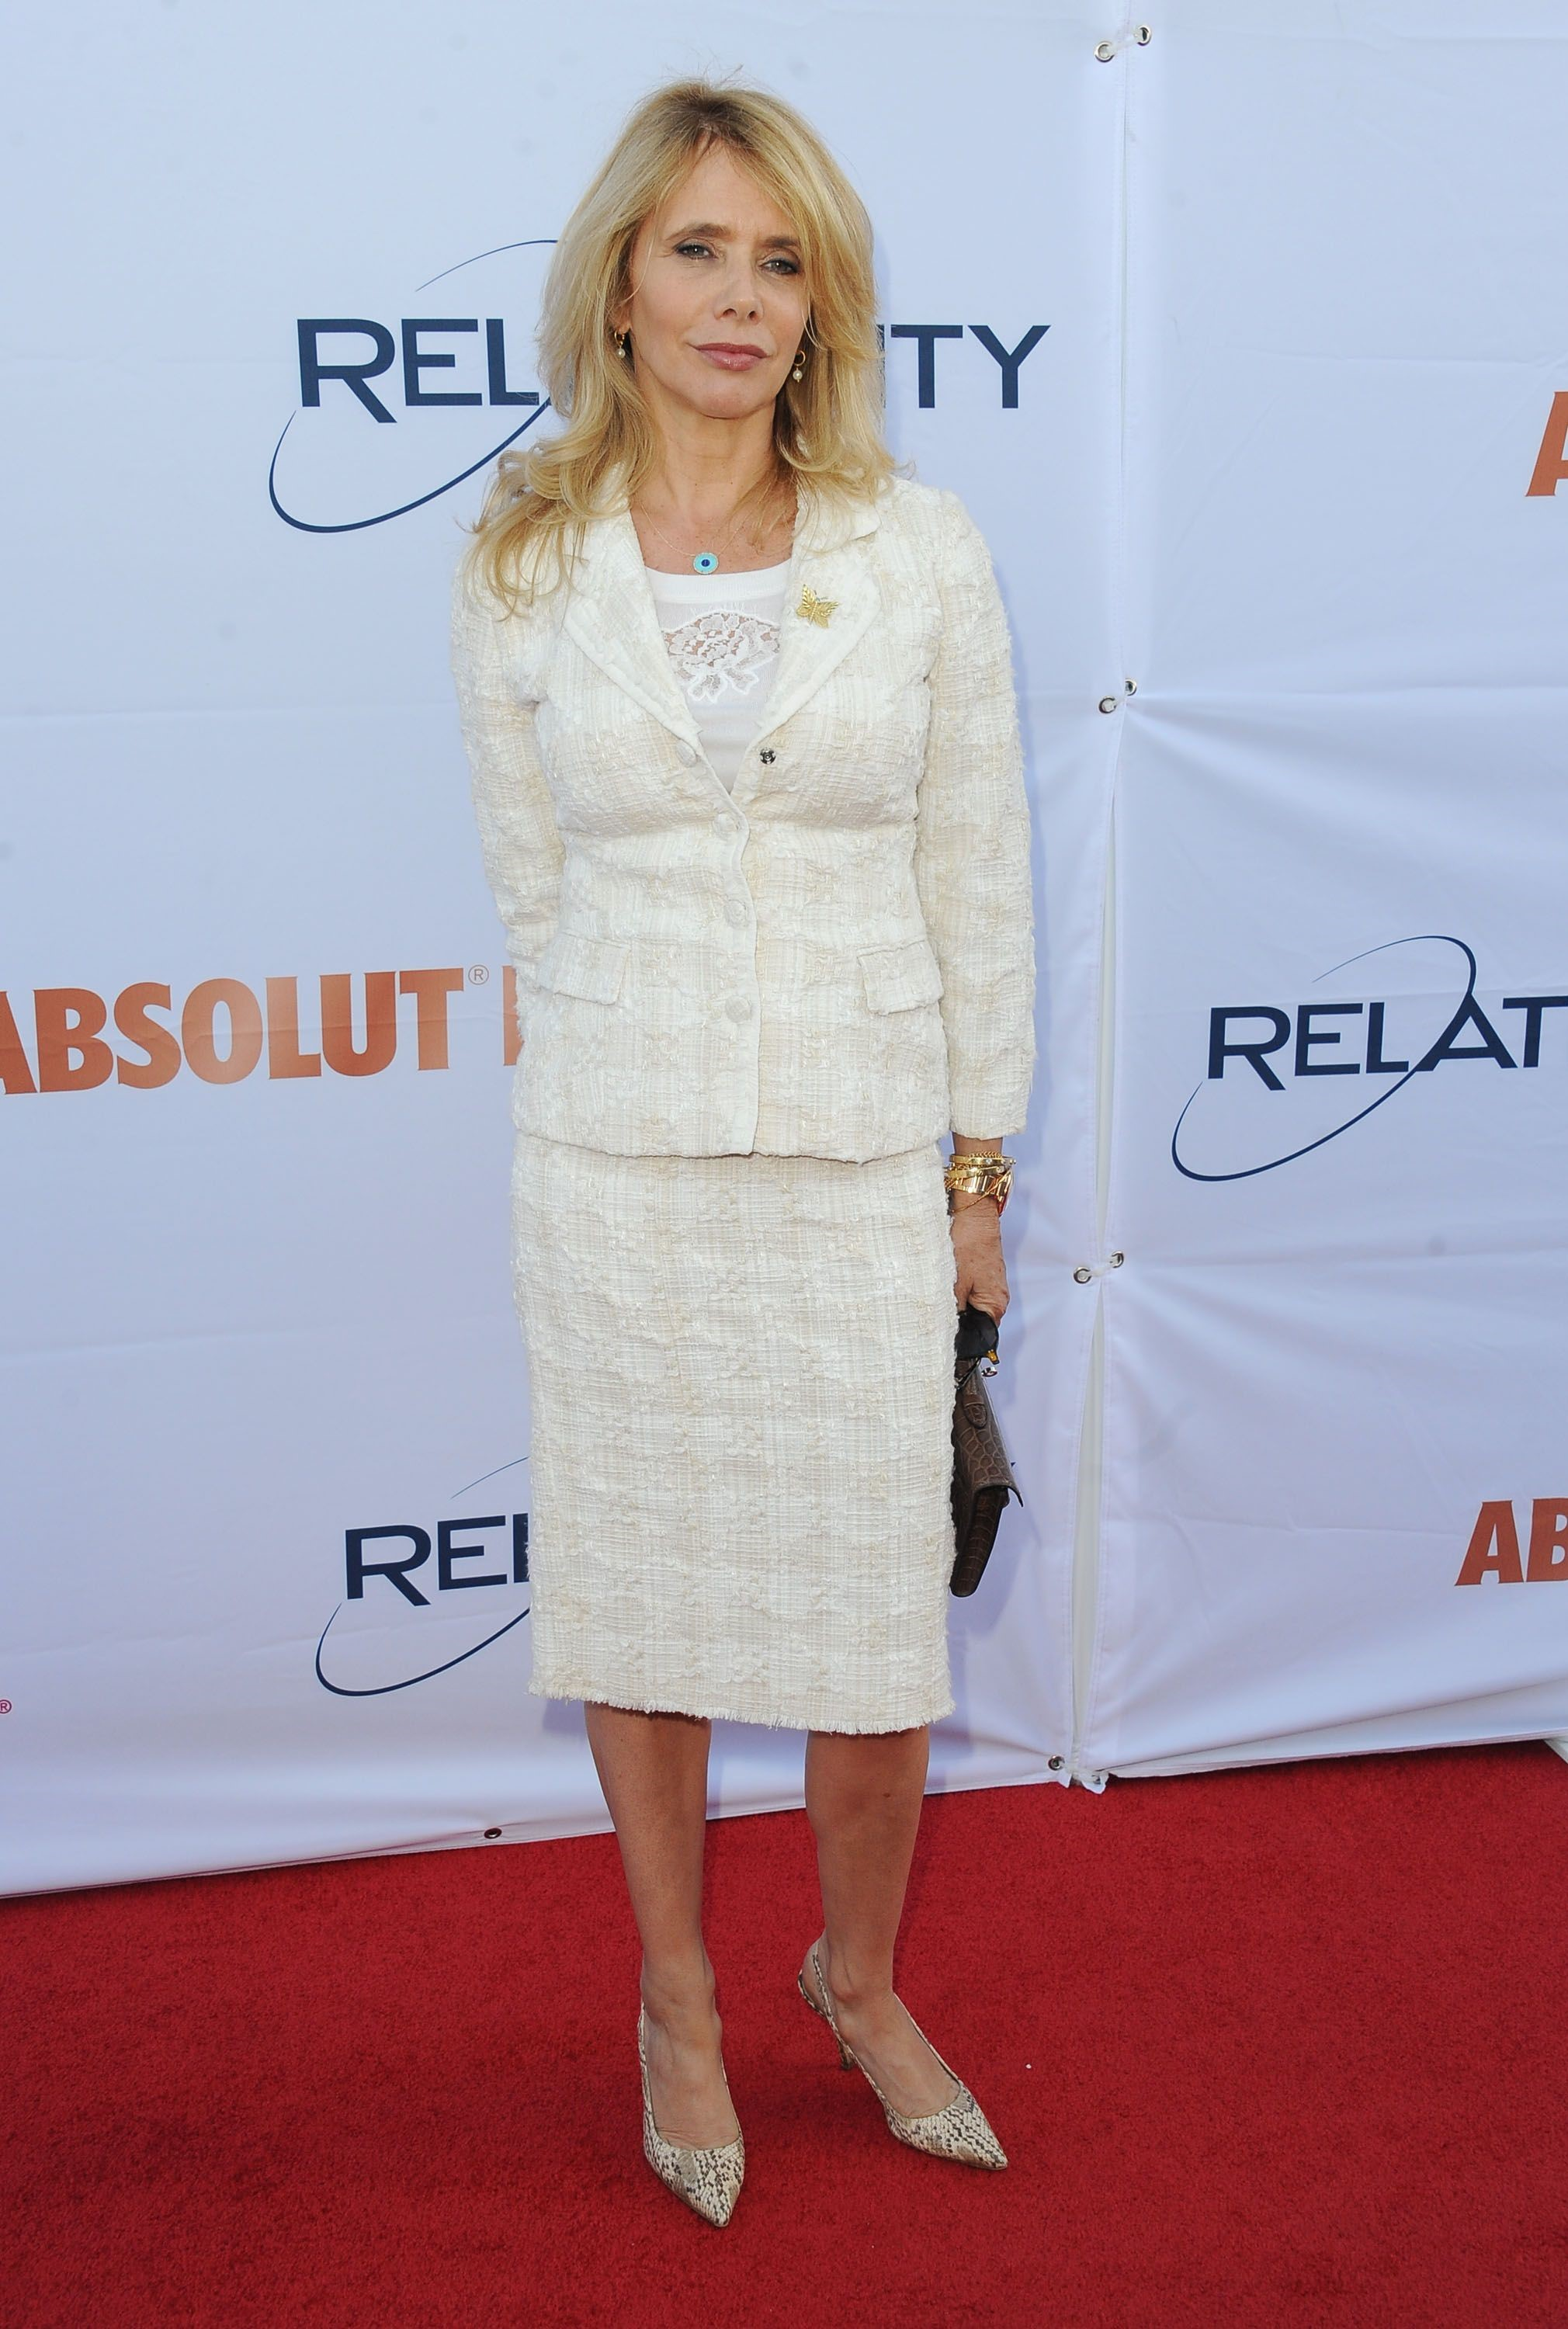 Rosanna Arquette attending Pathway to the Cure Benefit at Santa Monica Airport June 11, 2014